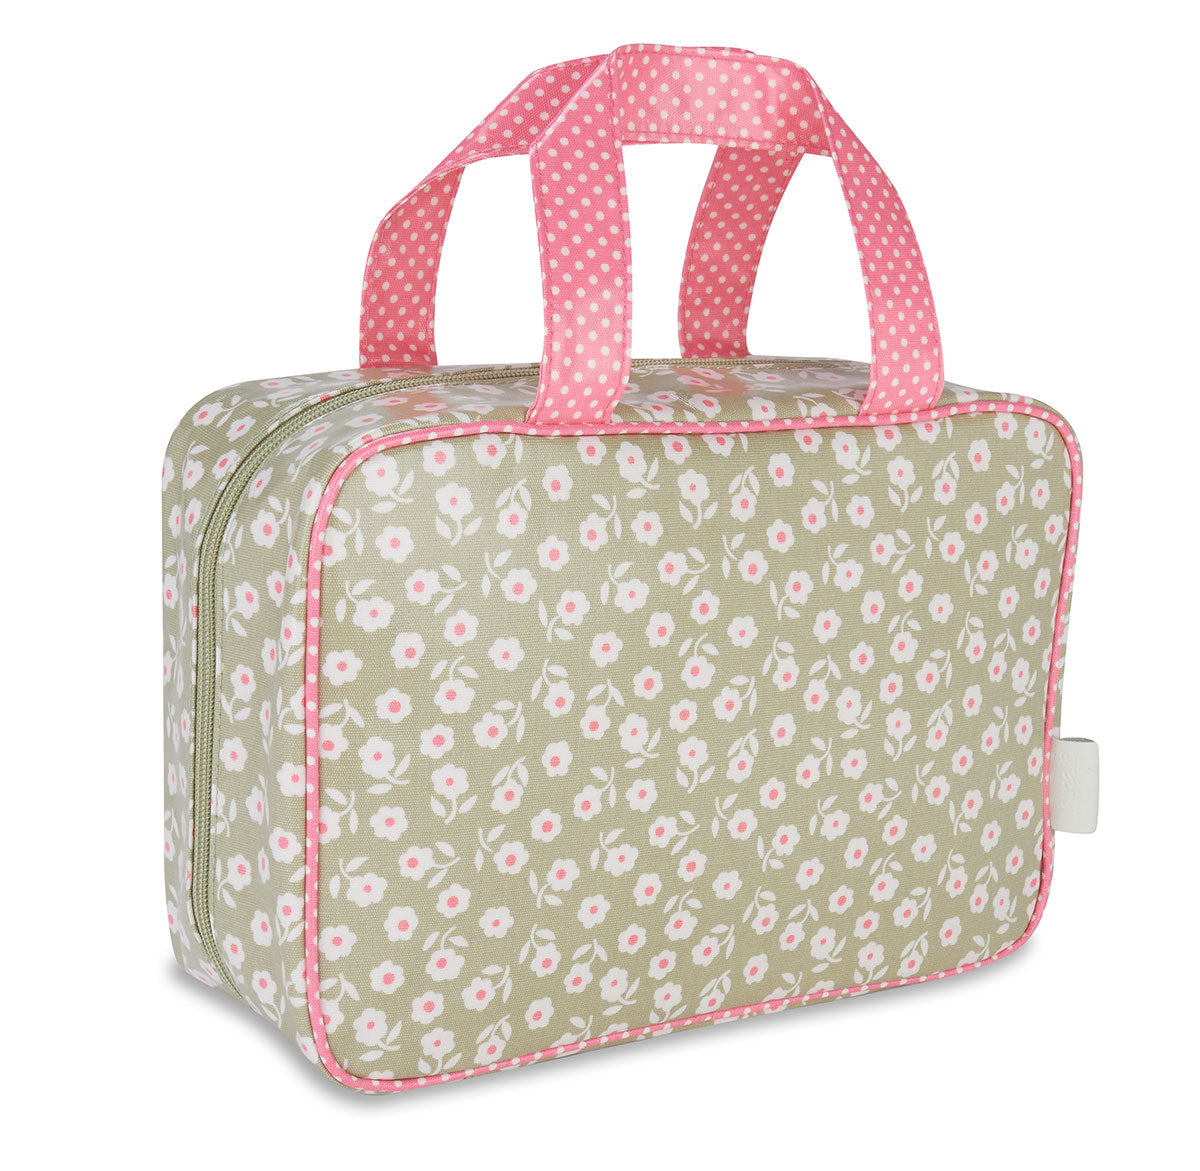 Buy  Daisy  Hanging Traveller Wash Bag in Sage  b4d1a0924619e